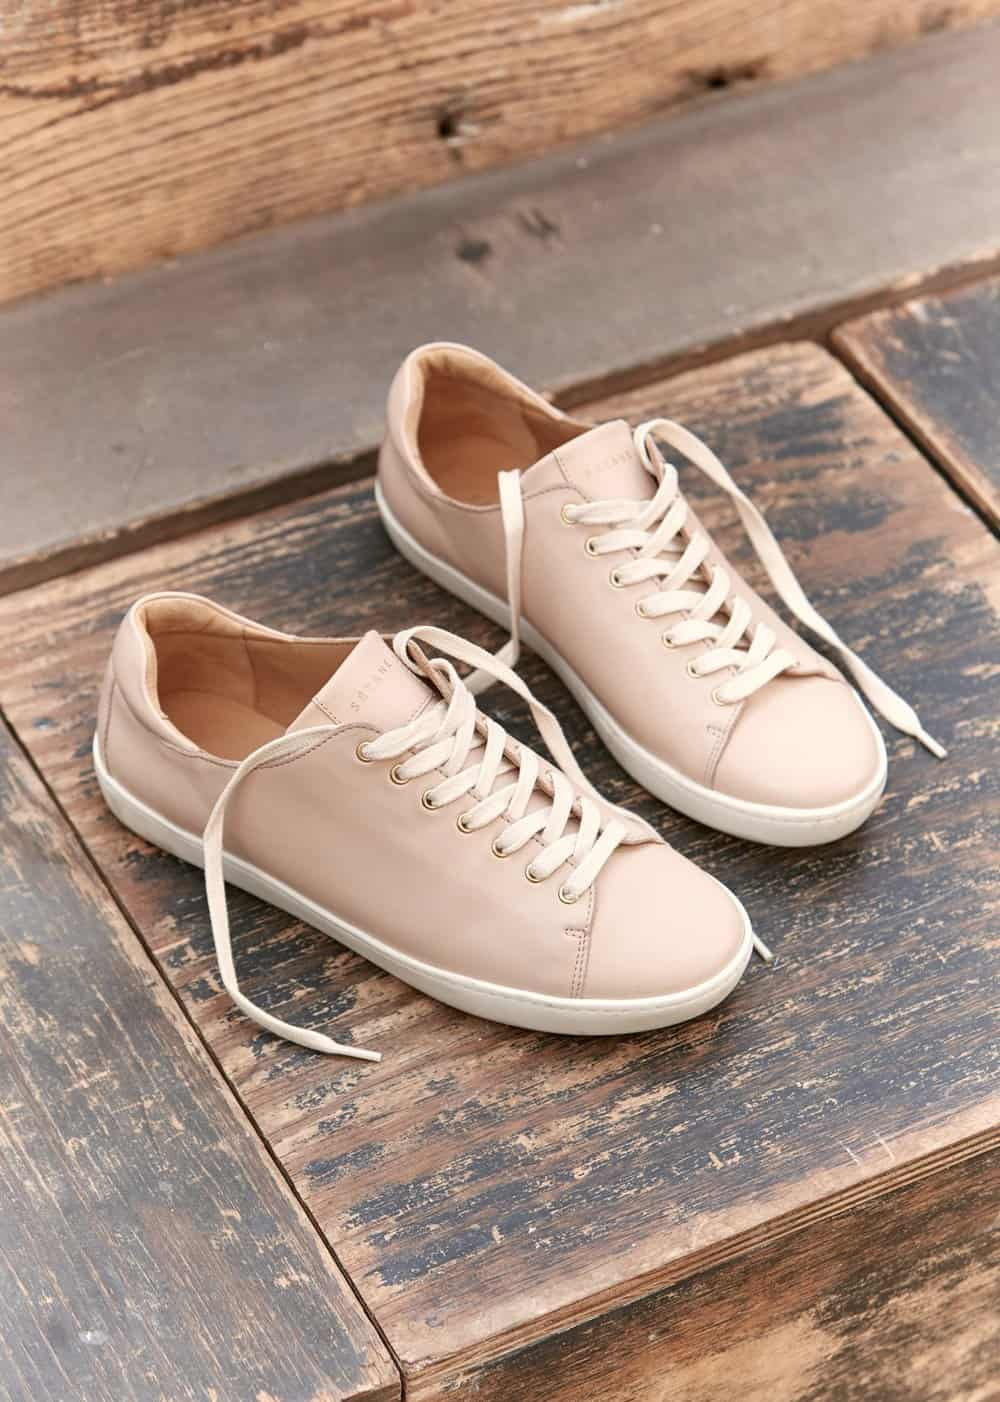 These sneakers were a best seller last year and there are more colors this year.